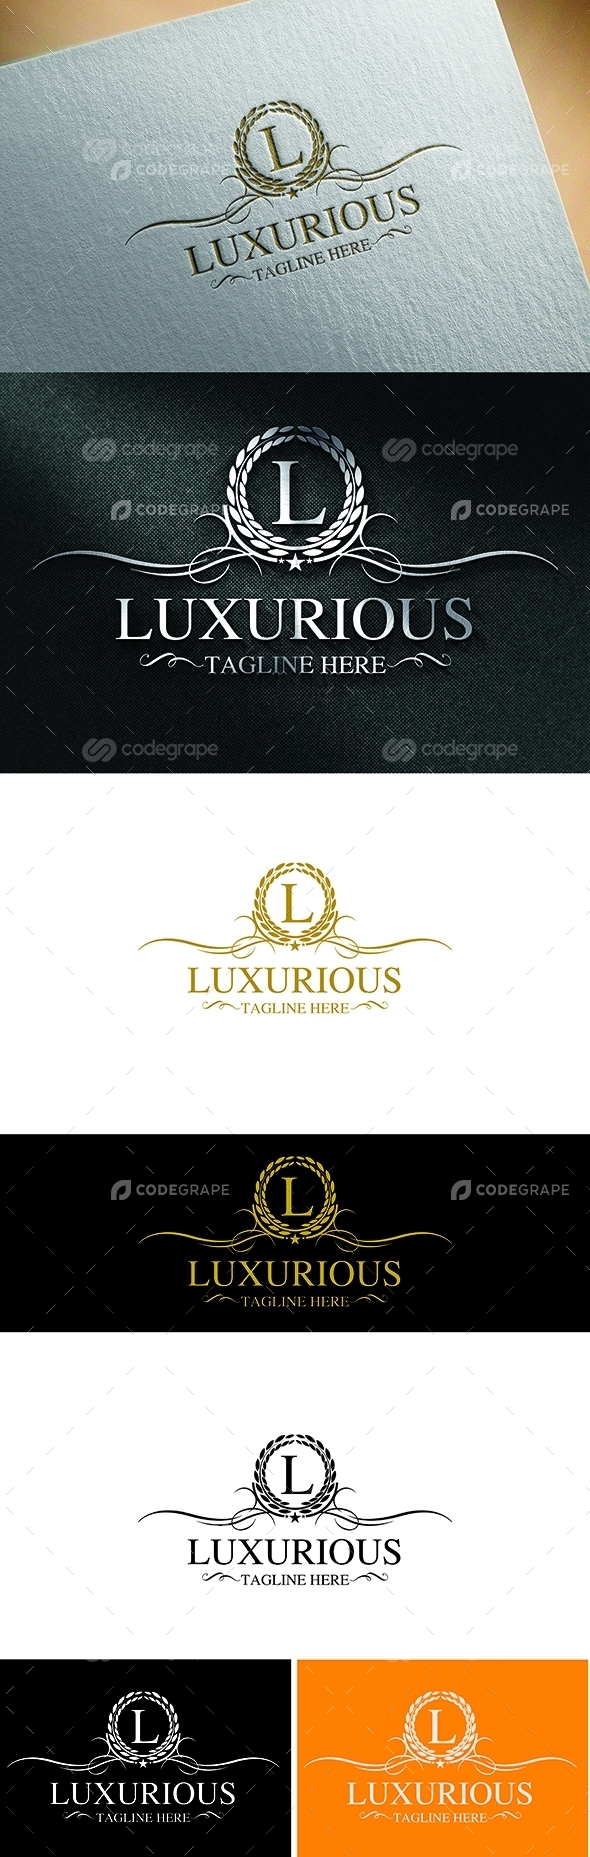 Luxurious Logo Design